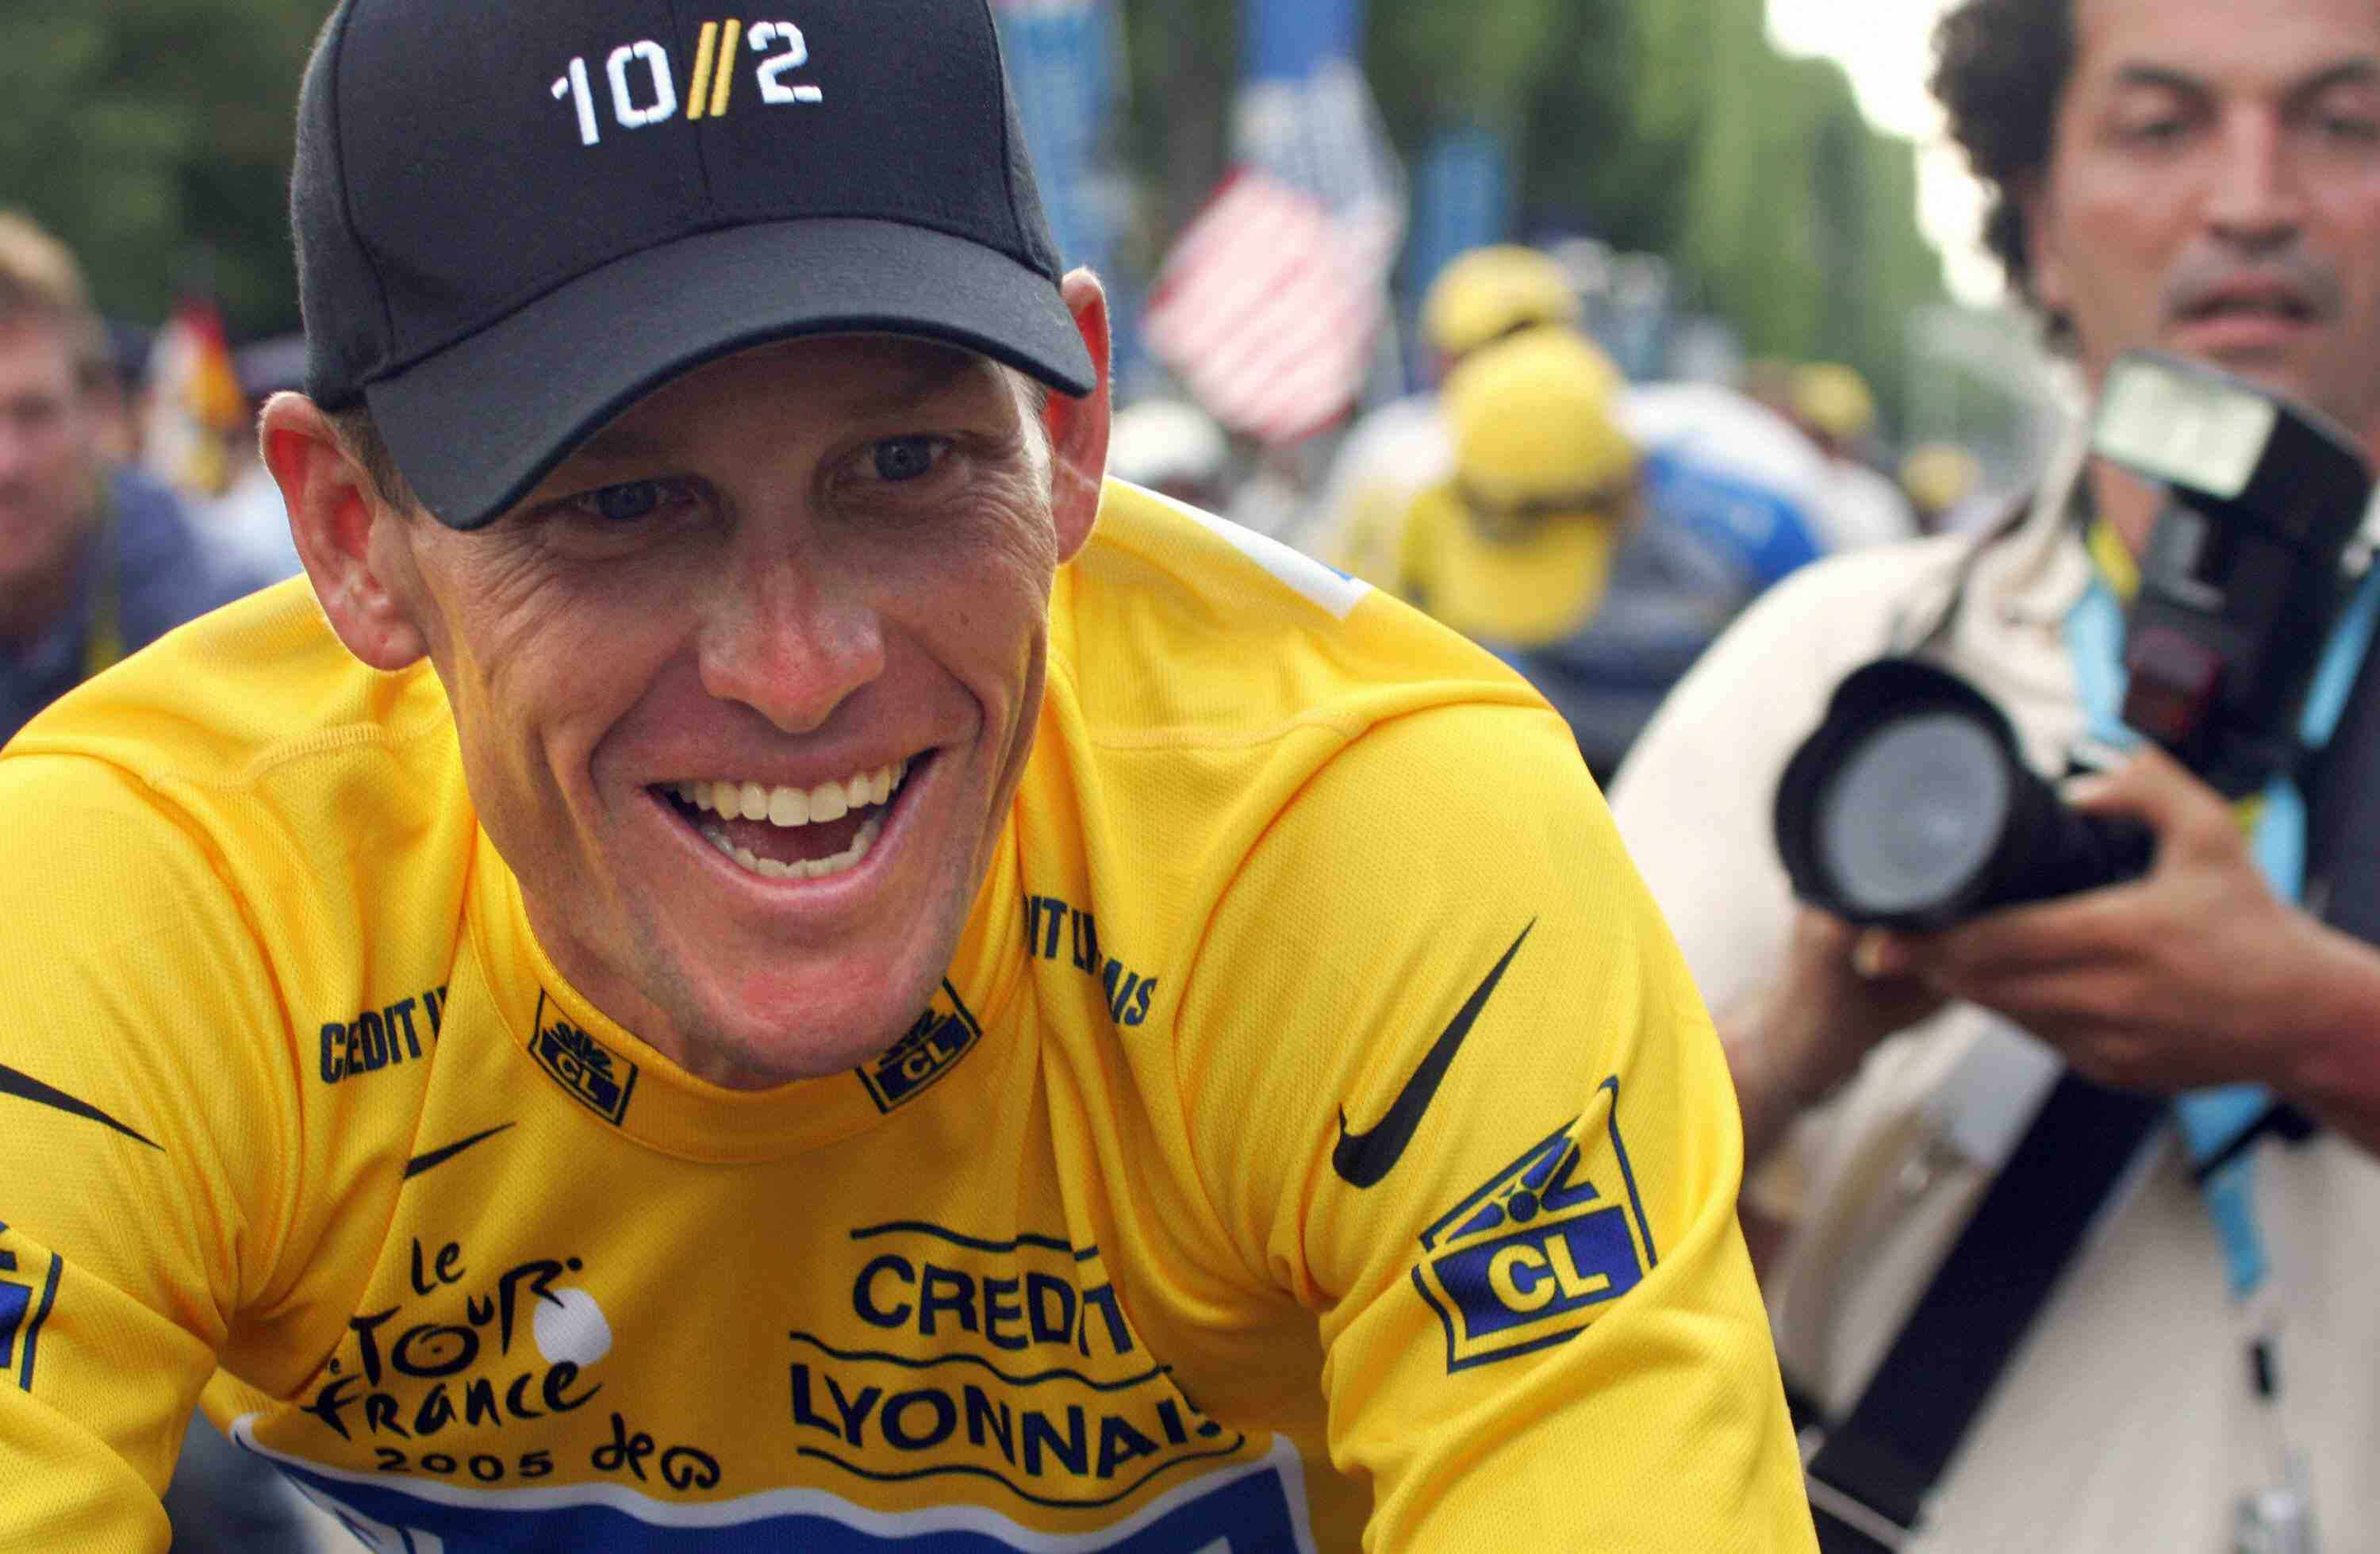 Will Armstrong wear yellow in Paris next July?